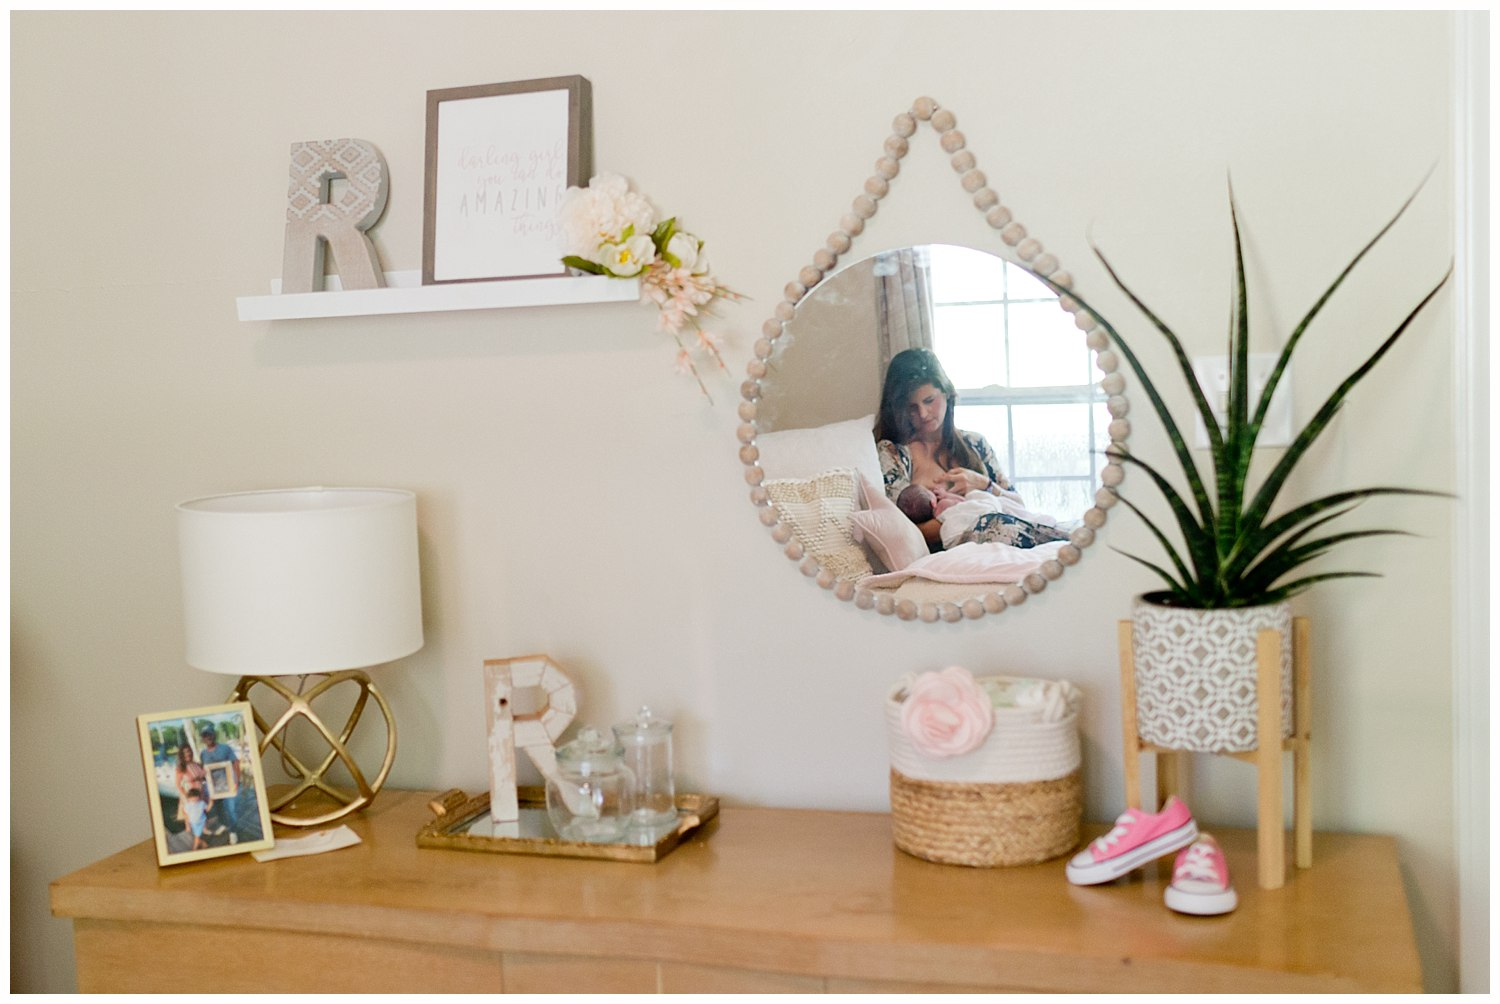 mother nursing baby girl in nursery - mirror reflection with cute decor